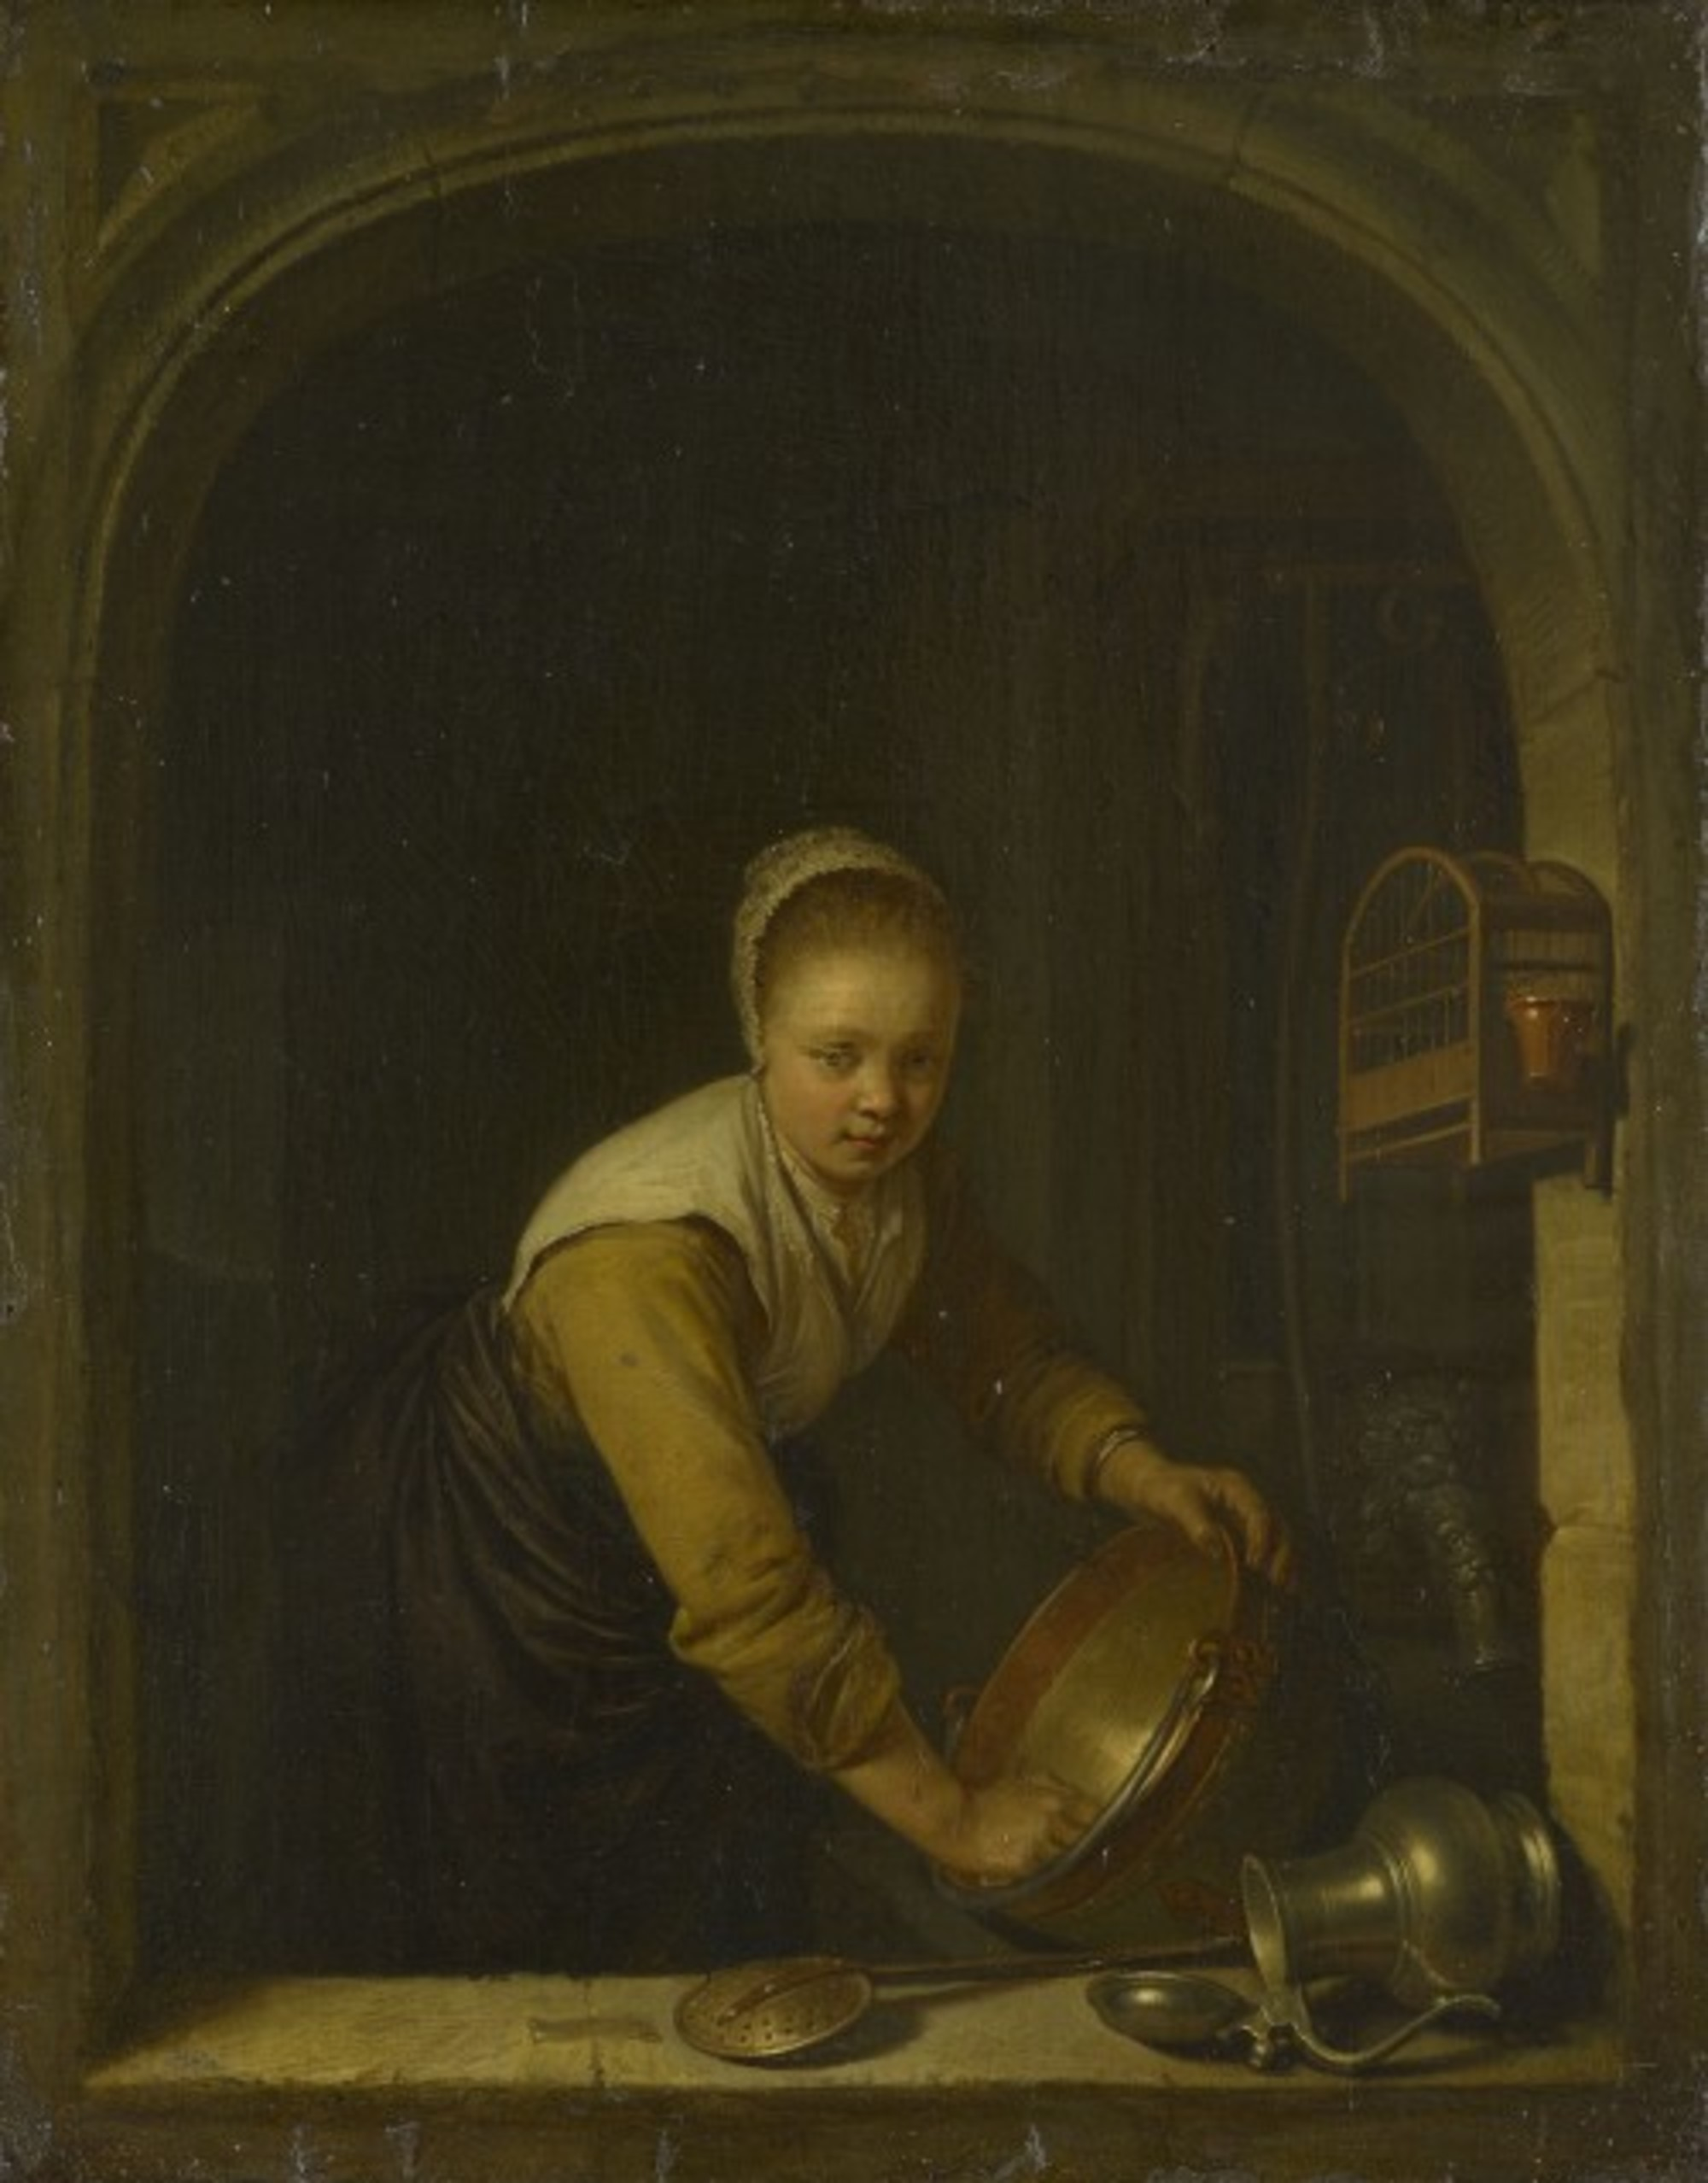 Gerard-Dou---Young-Girl-at-a-Window-scrubbing-a-Brass-Pan.jpg